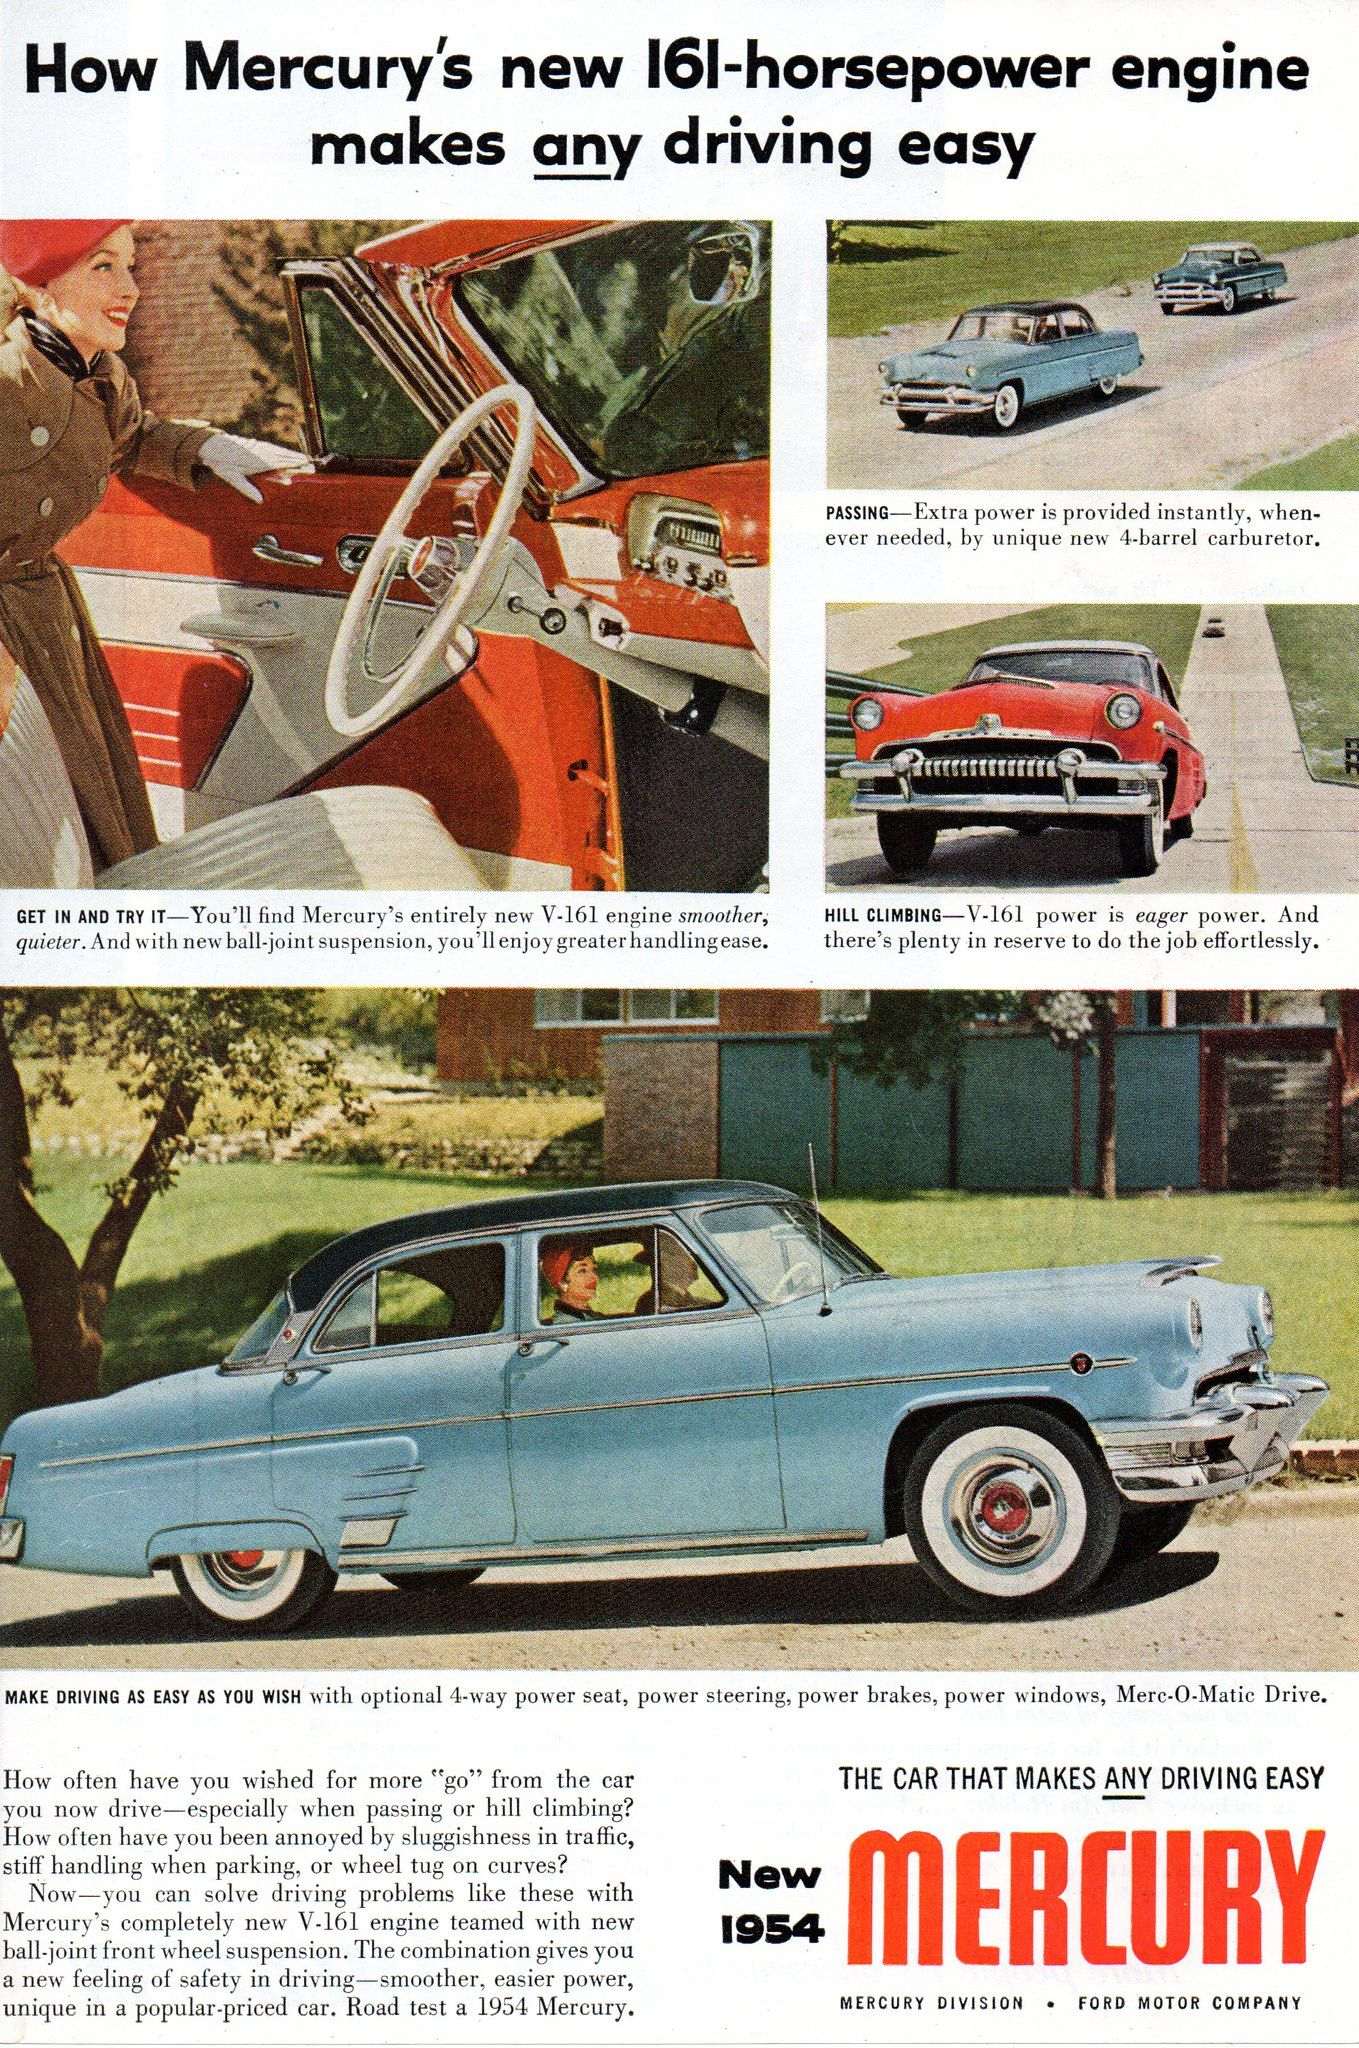 1954 Mercury Ford Usa Original Magazine Advertisement Car